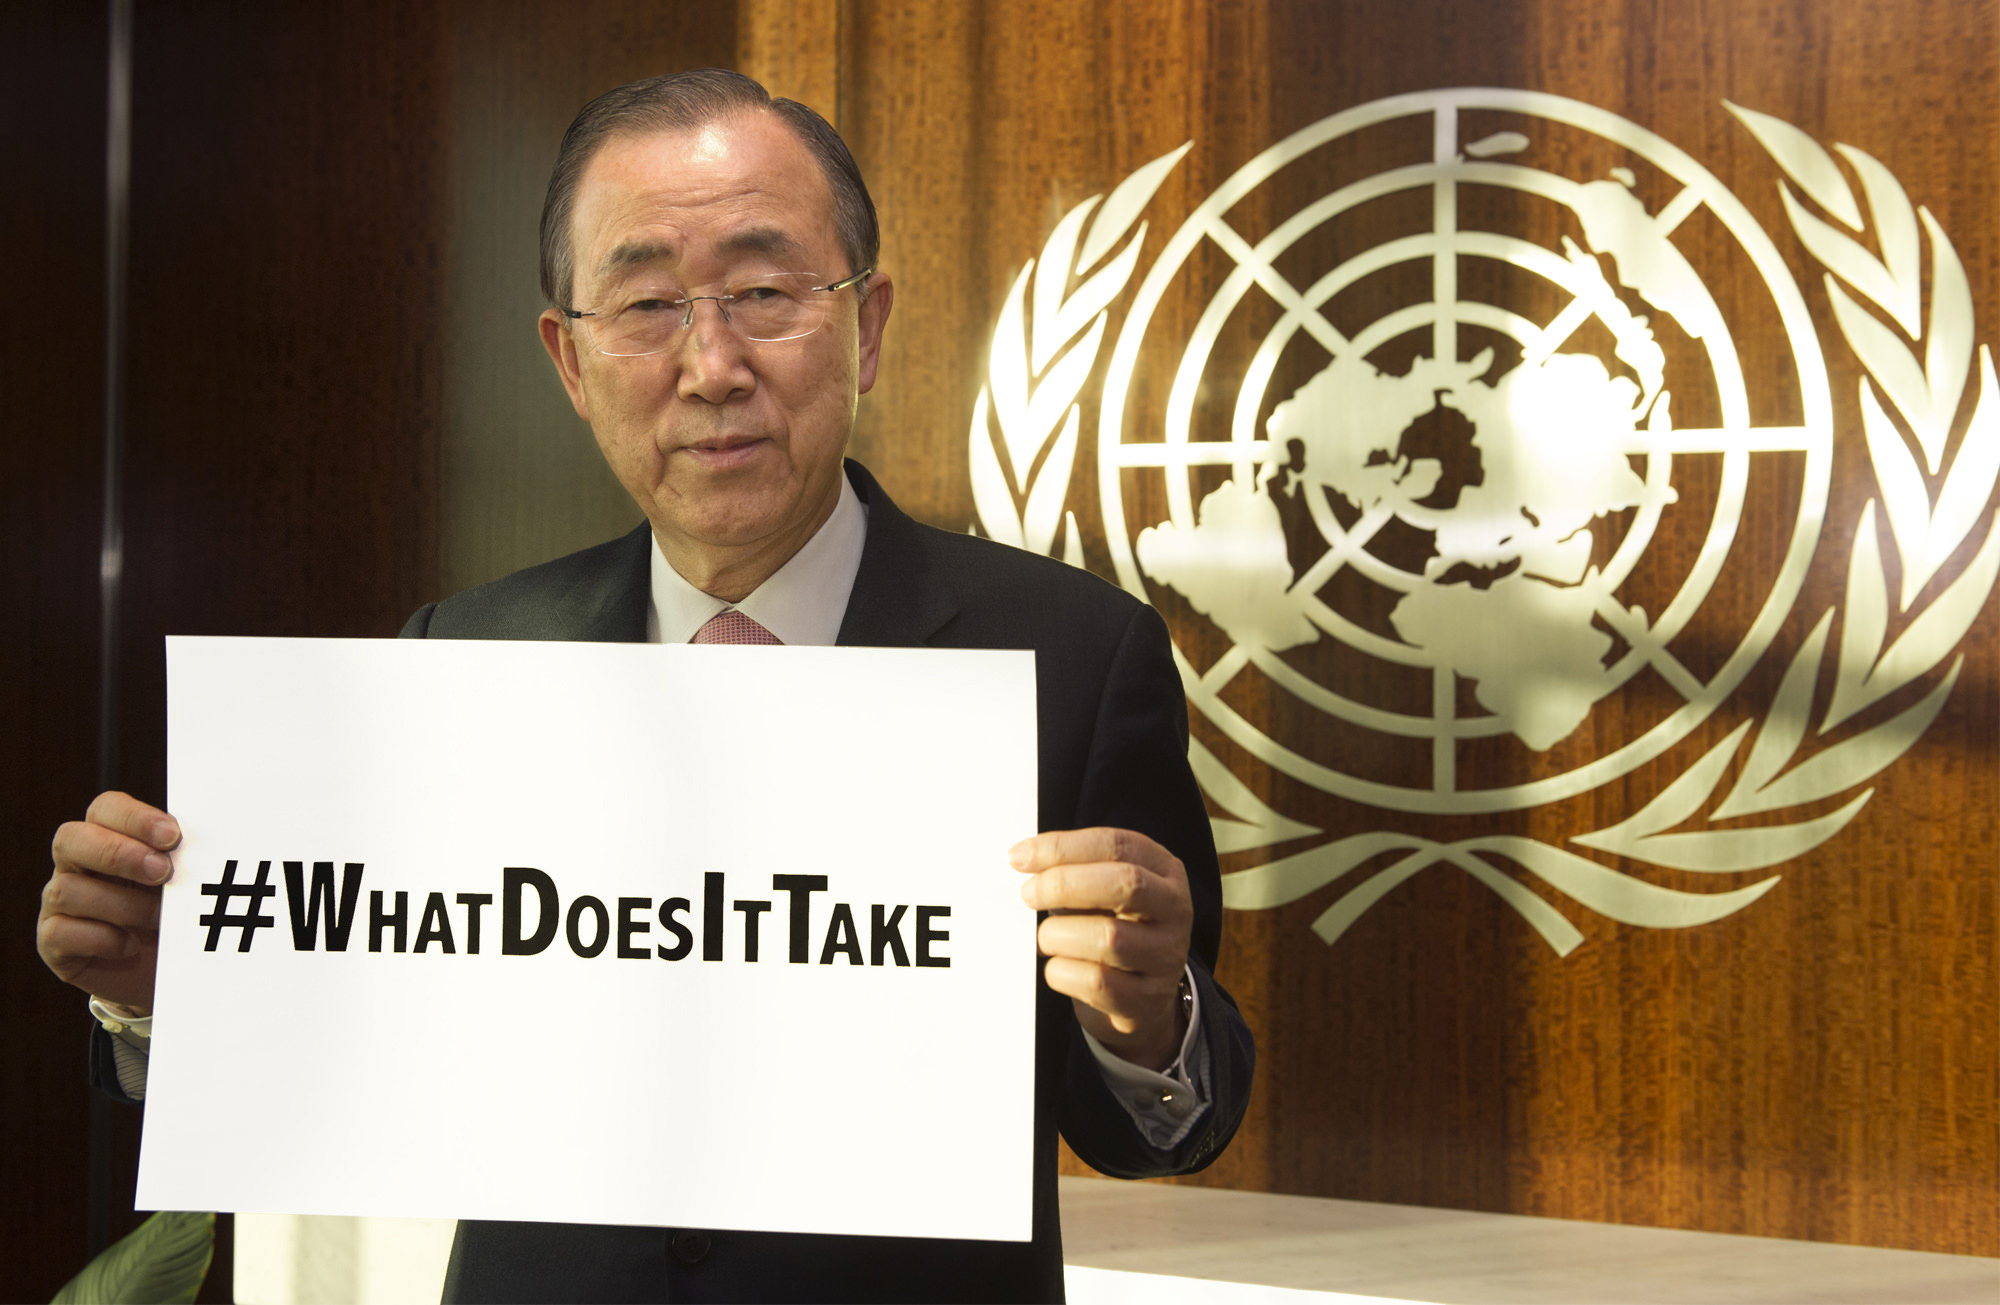 Ban Ki-moon, Secretary General of the United Nations (2007-2016) participating.